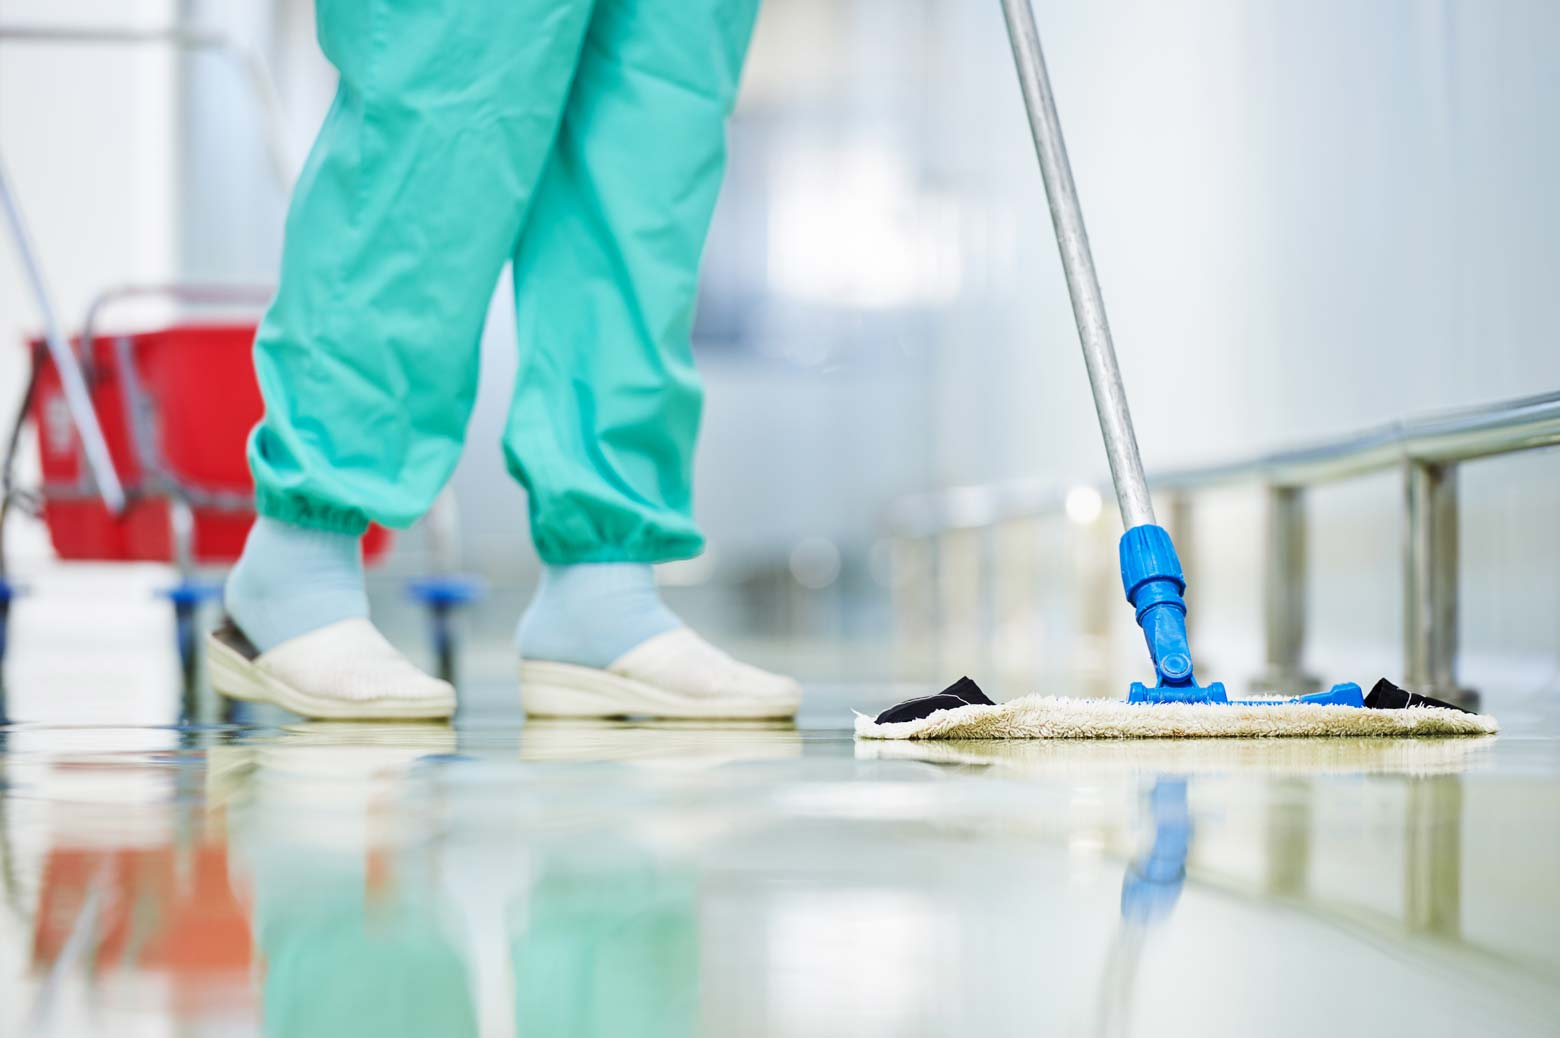 Stock image of a person wearing medical scrubs mopping the floor.